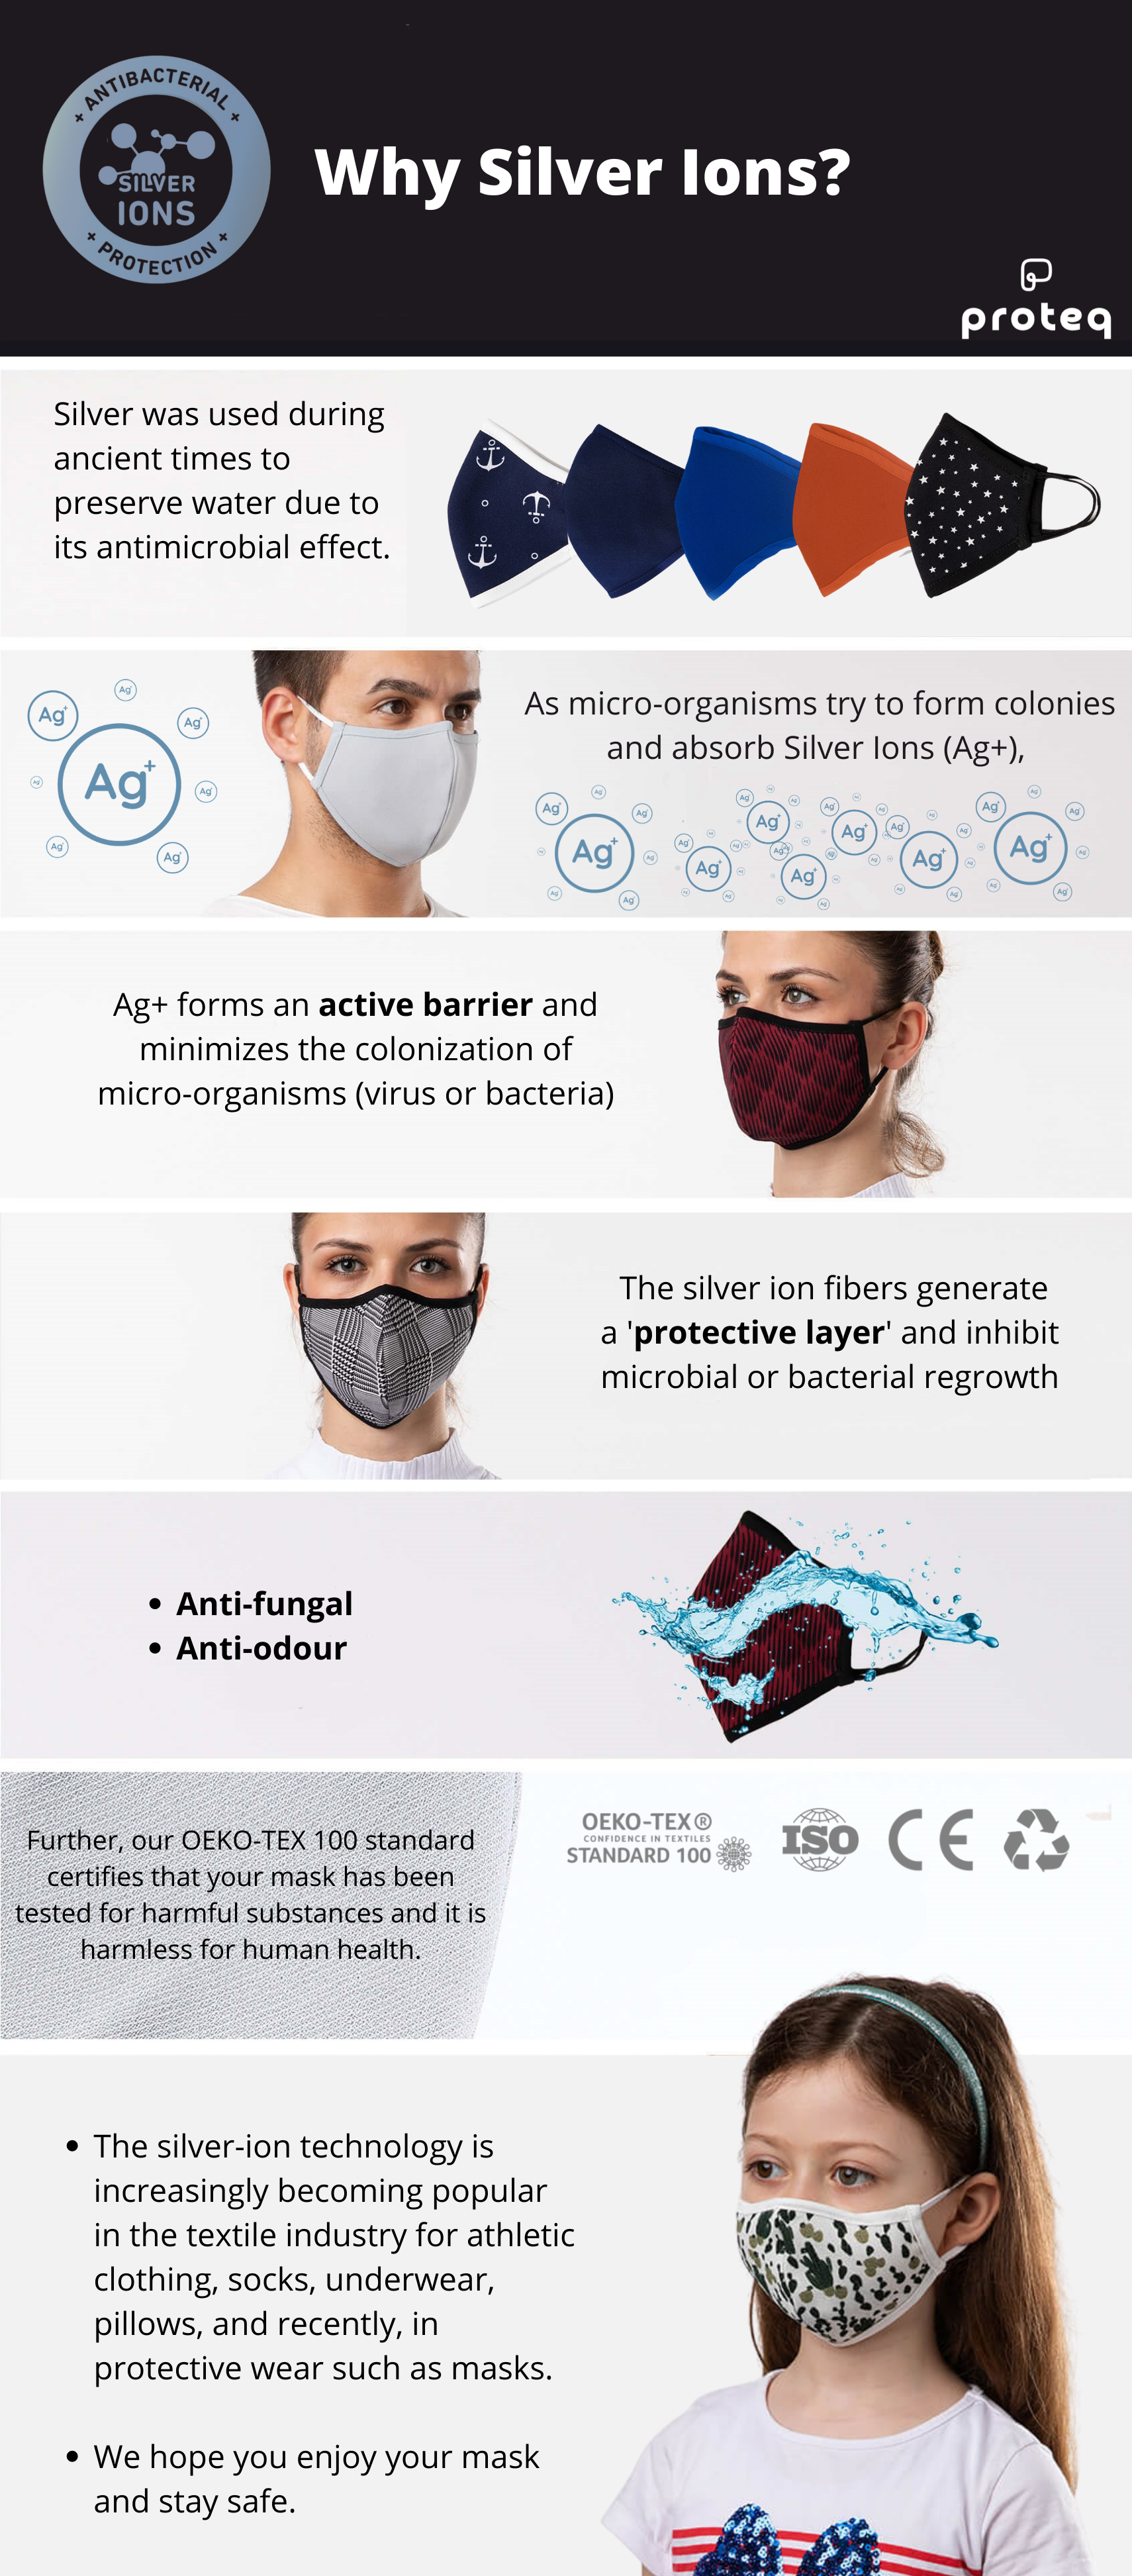 Proteq Silver Ion Canadian High Quality Masks for Kids and Adults